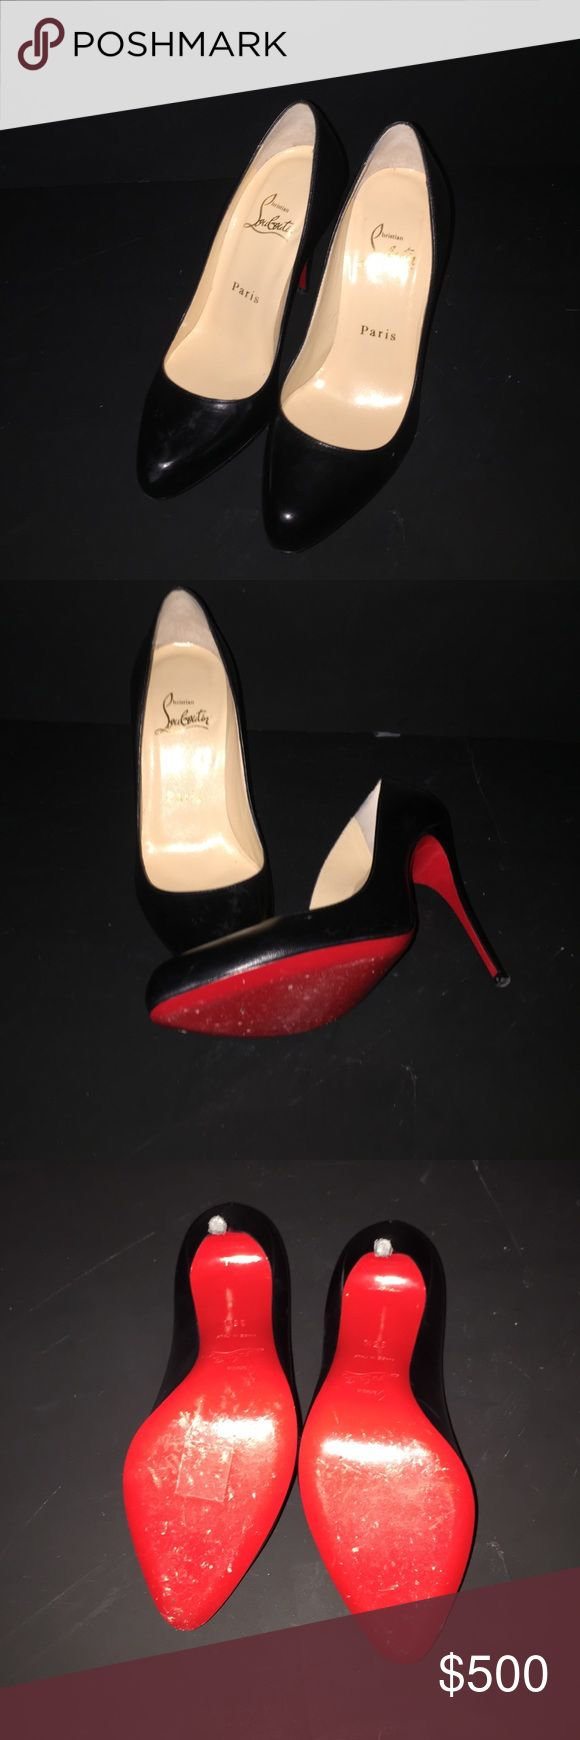 🎉Last PRICE DROP 😍😍Black LOUBS👠👠 WORN ONCE Worn once bottoms only scuffled Christian Louboutin Shoes Heels